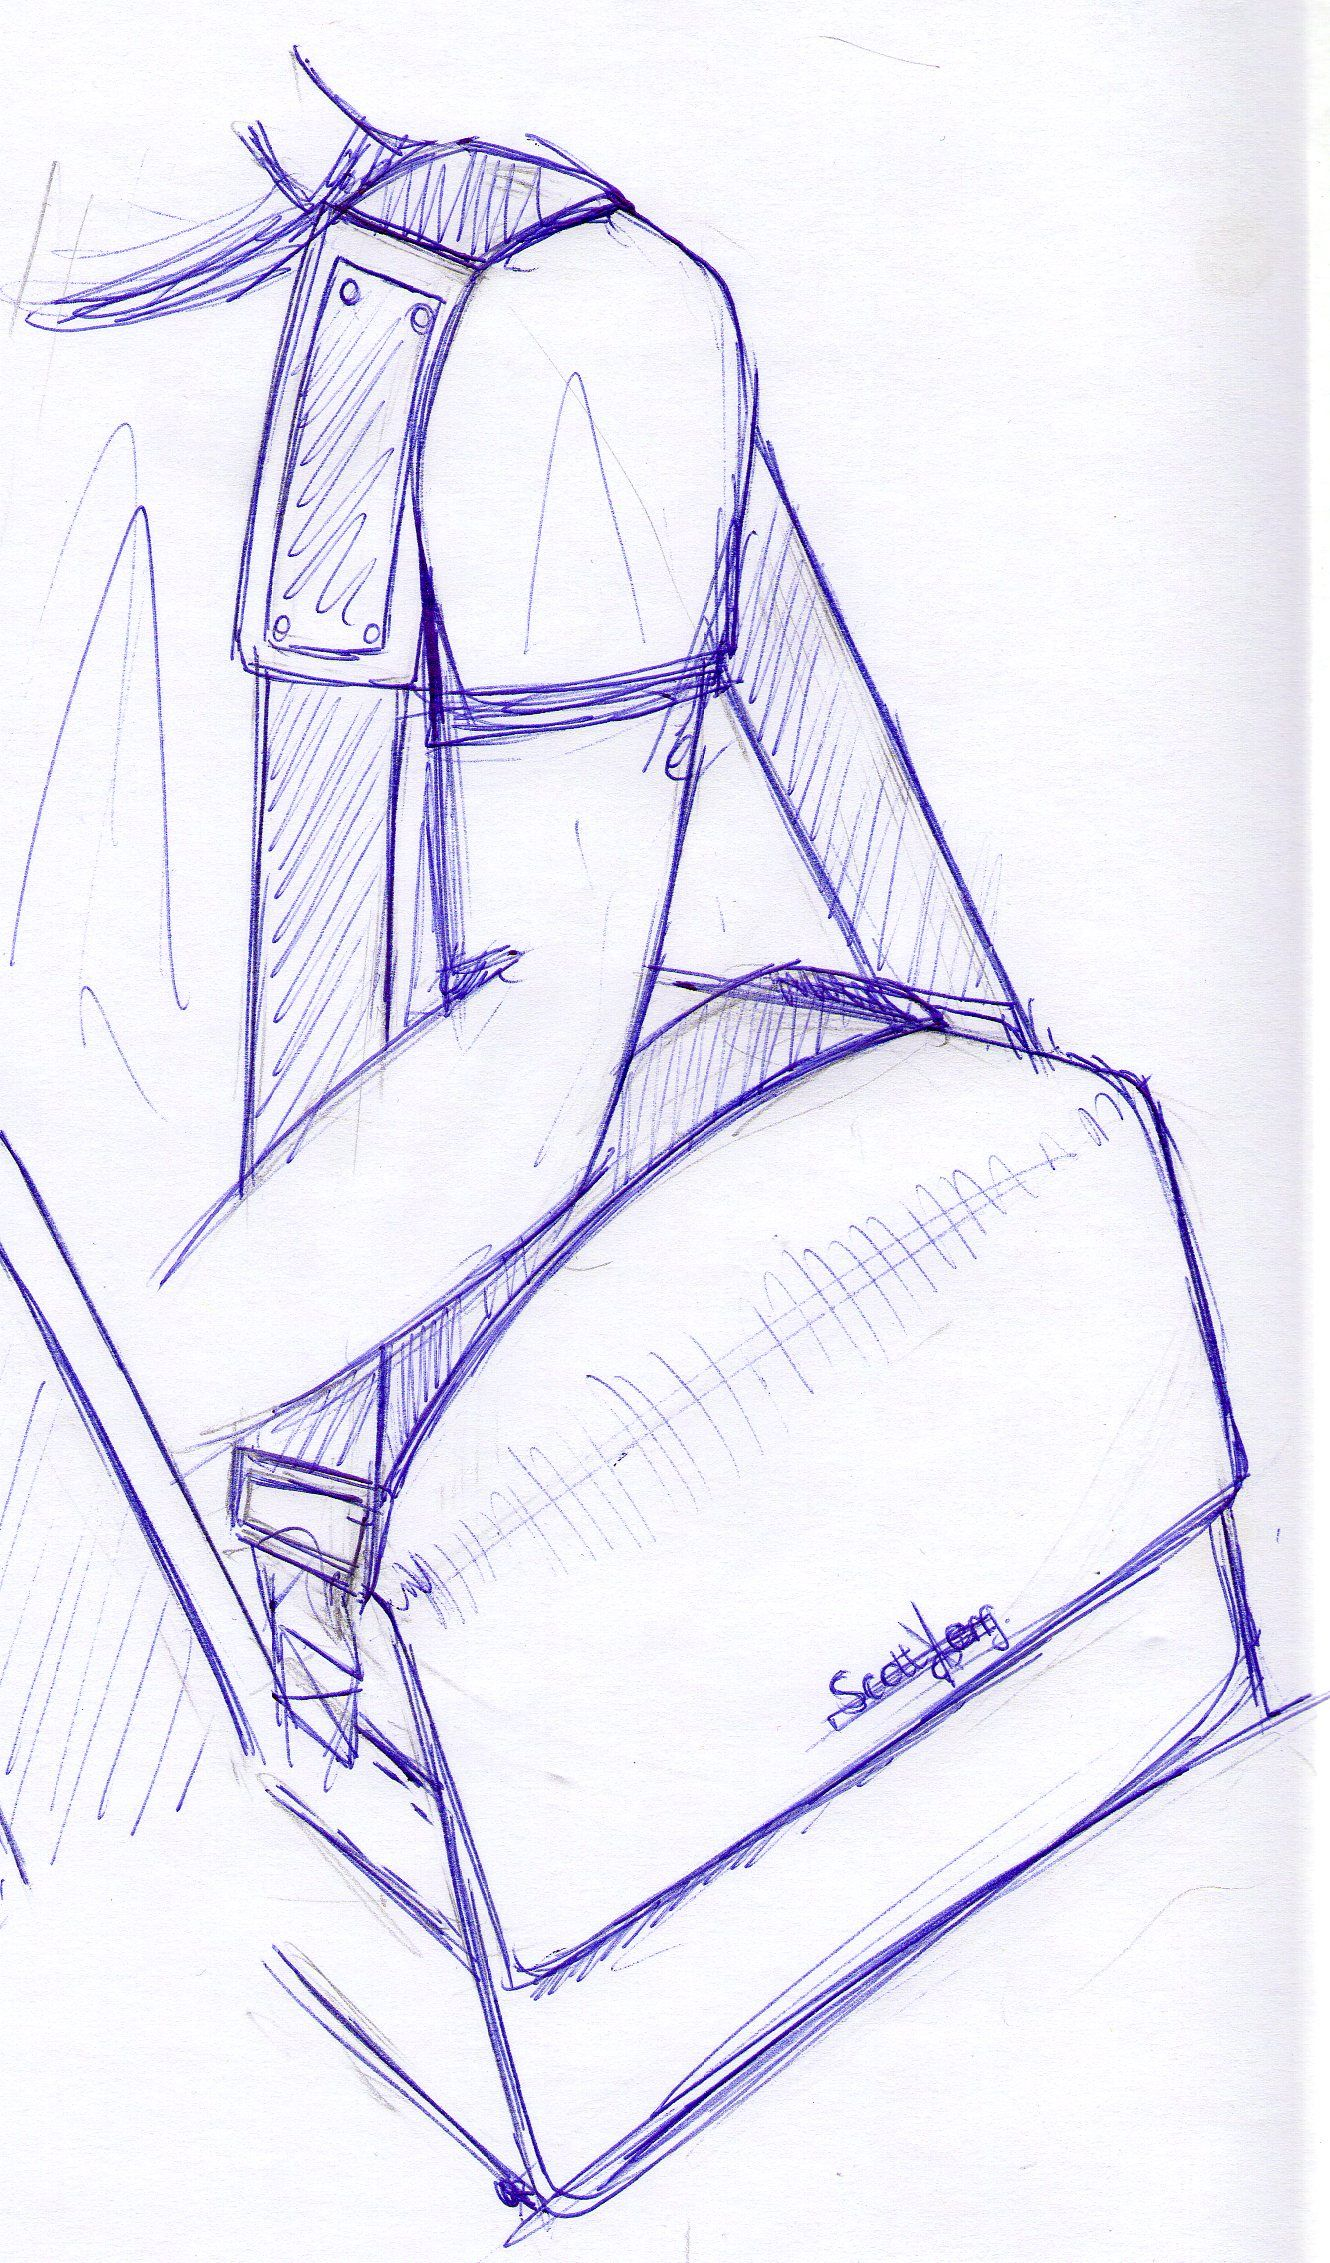 Sketches of my bag for hair designers #5